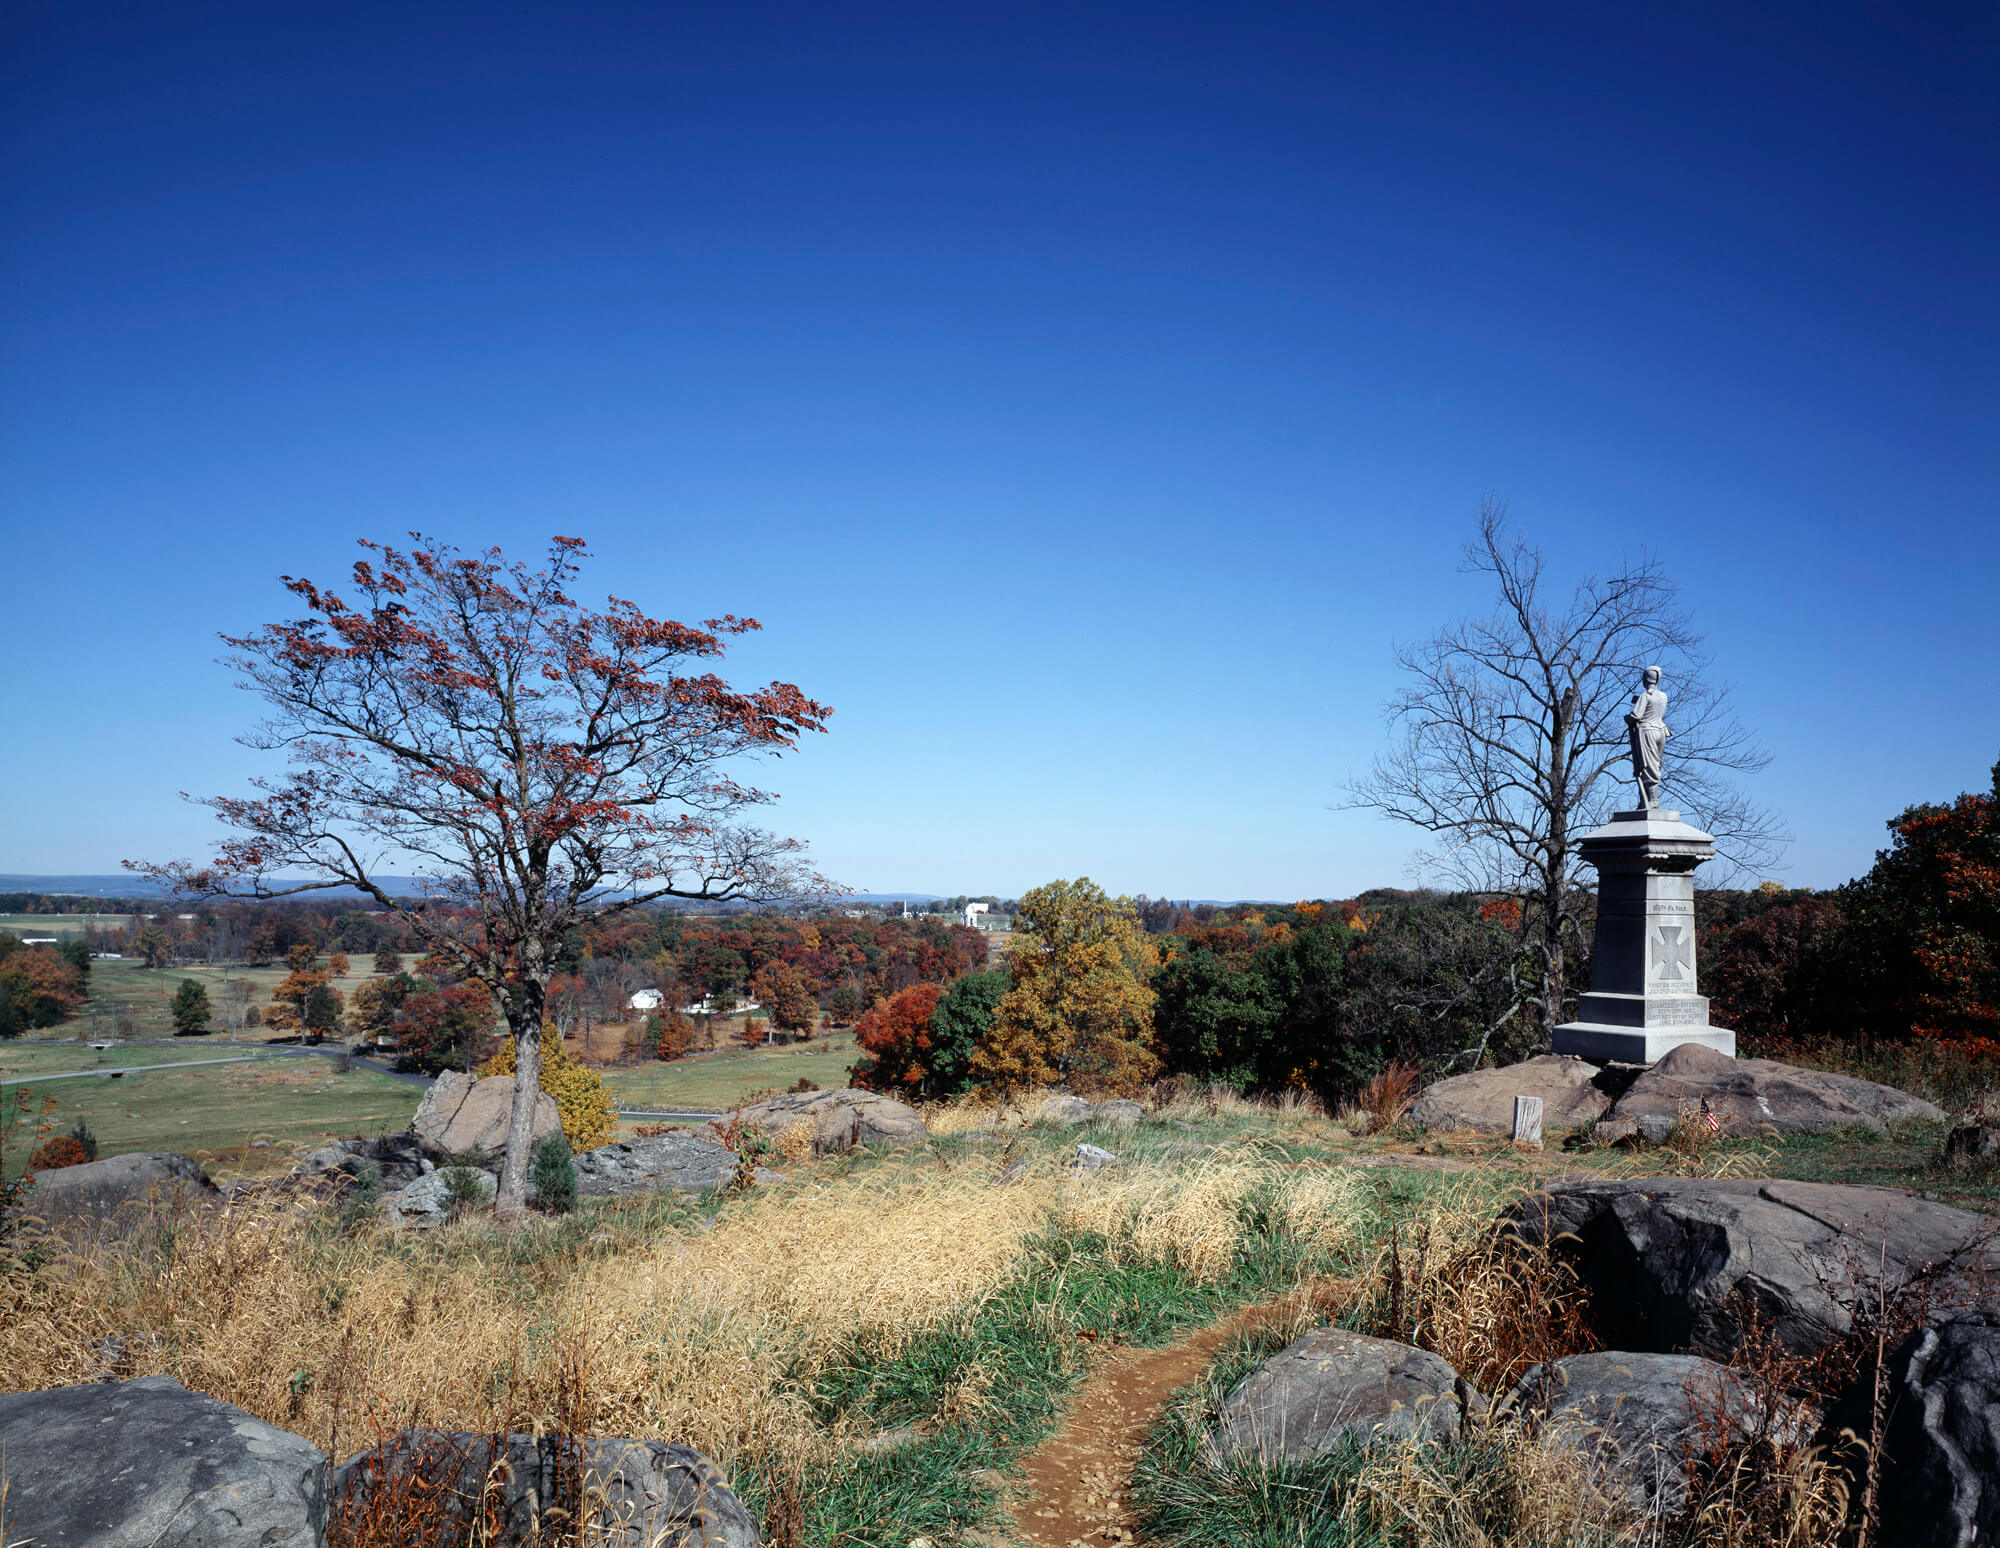 A beautiful fall view from the top of Little Round Top in the Gettysburg National Military Park